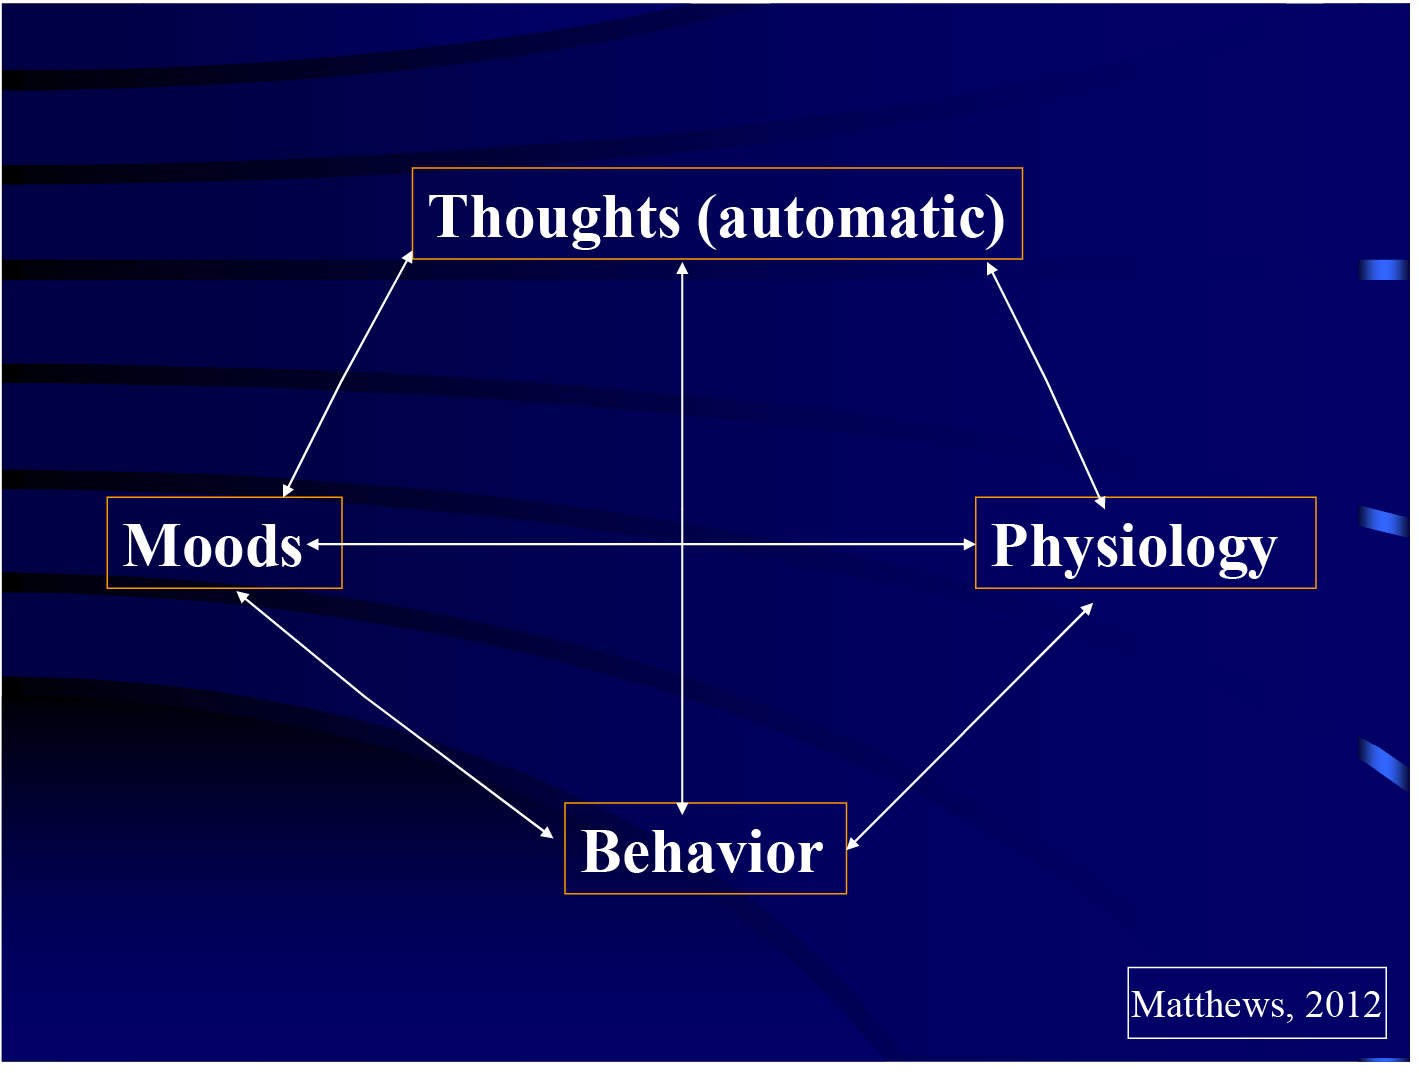 Cognitive Behavioral Therapy Approach For Suicidal Thinking And Behaviors In Depression